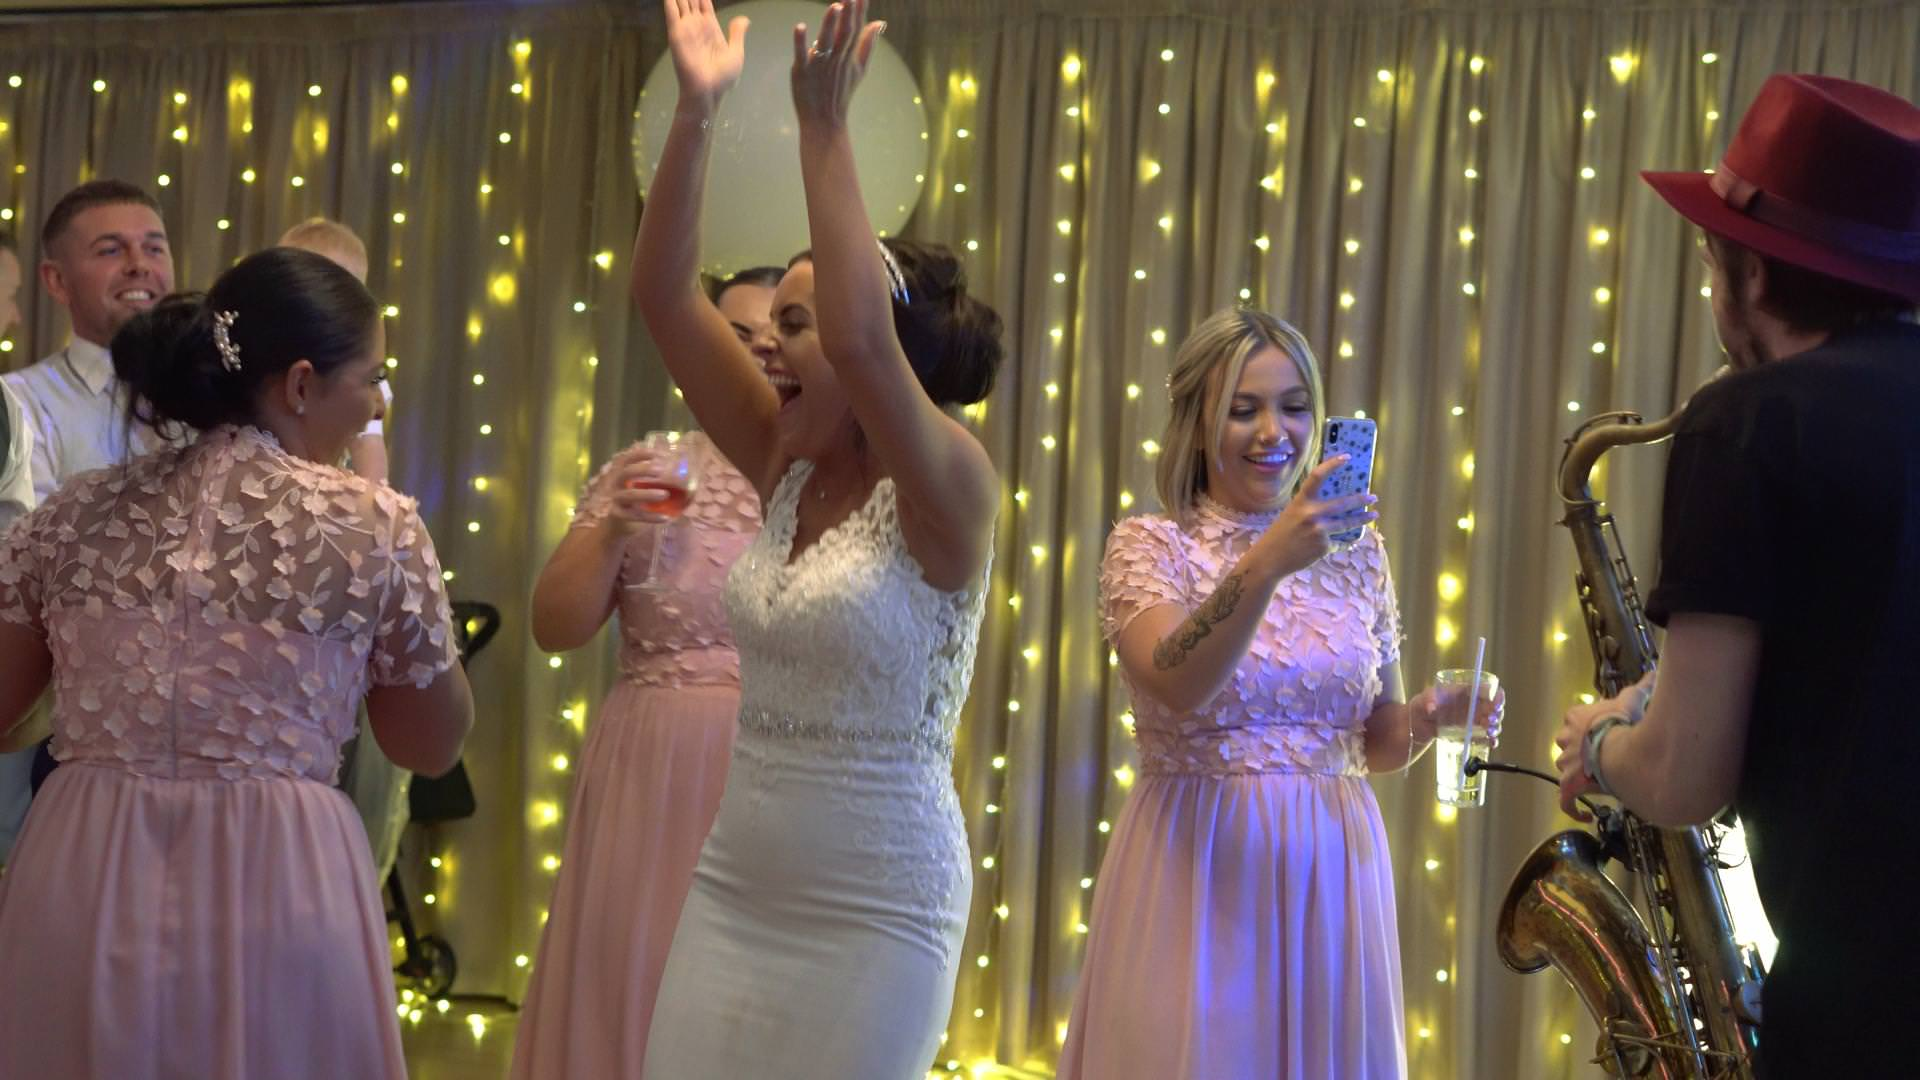 bride claps and dances with her bridesmaids at Moddershall Oaks